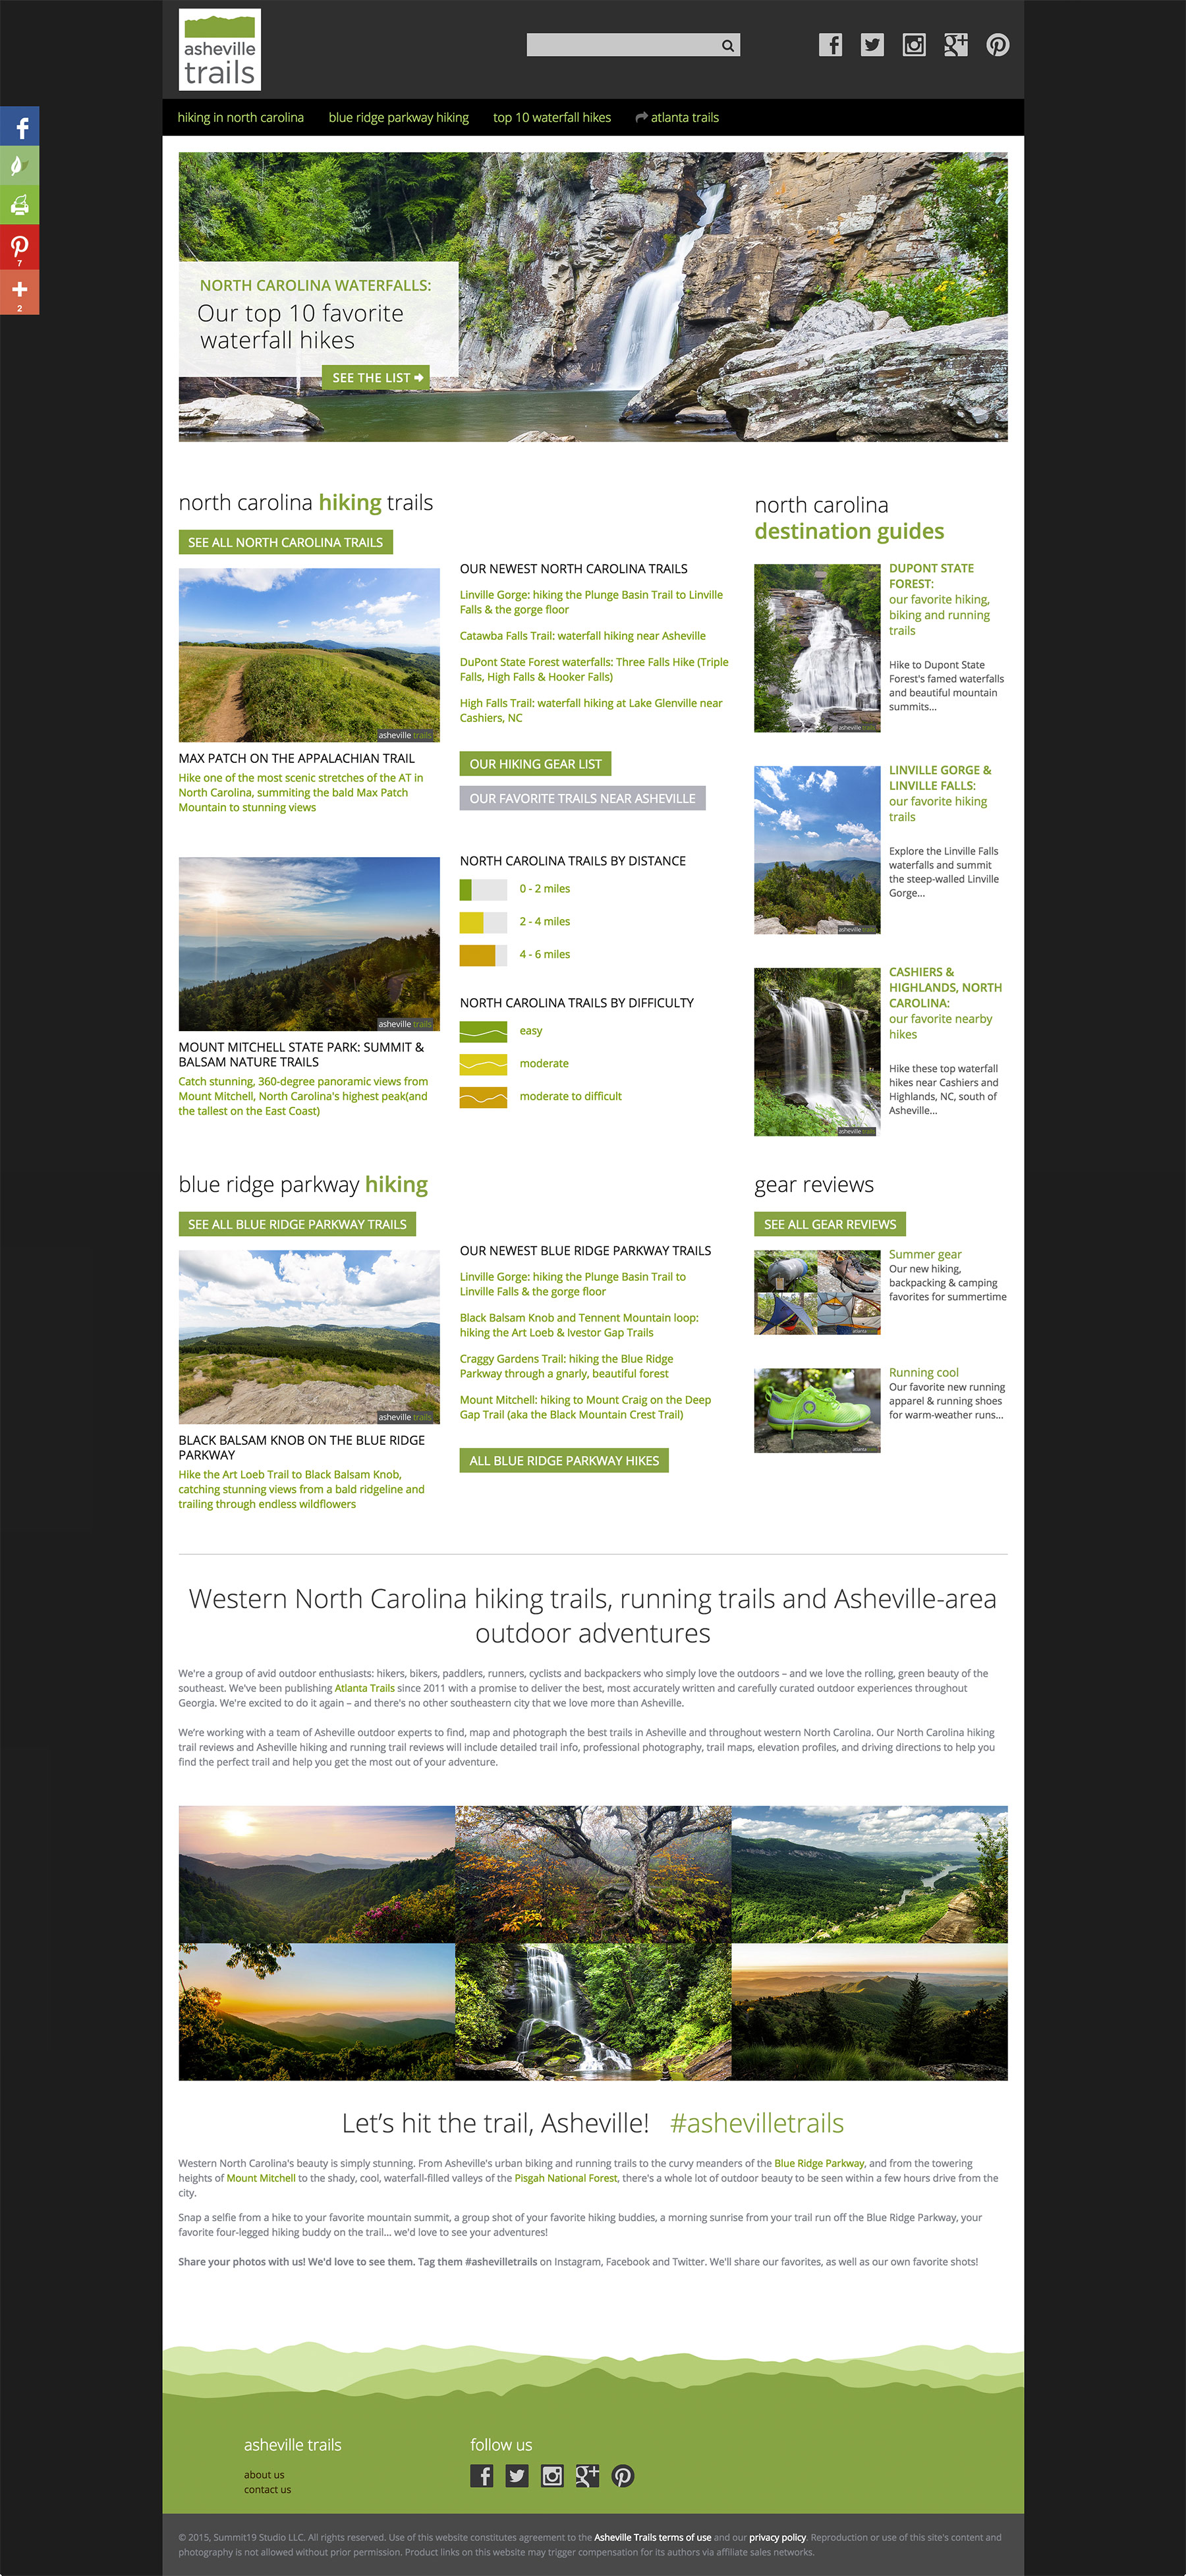 Asheville Trails is a curated collection of western North Carolina's best hiking, running & backpacking trails